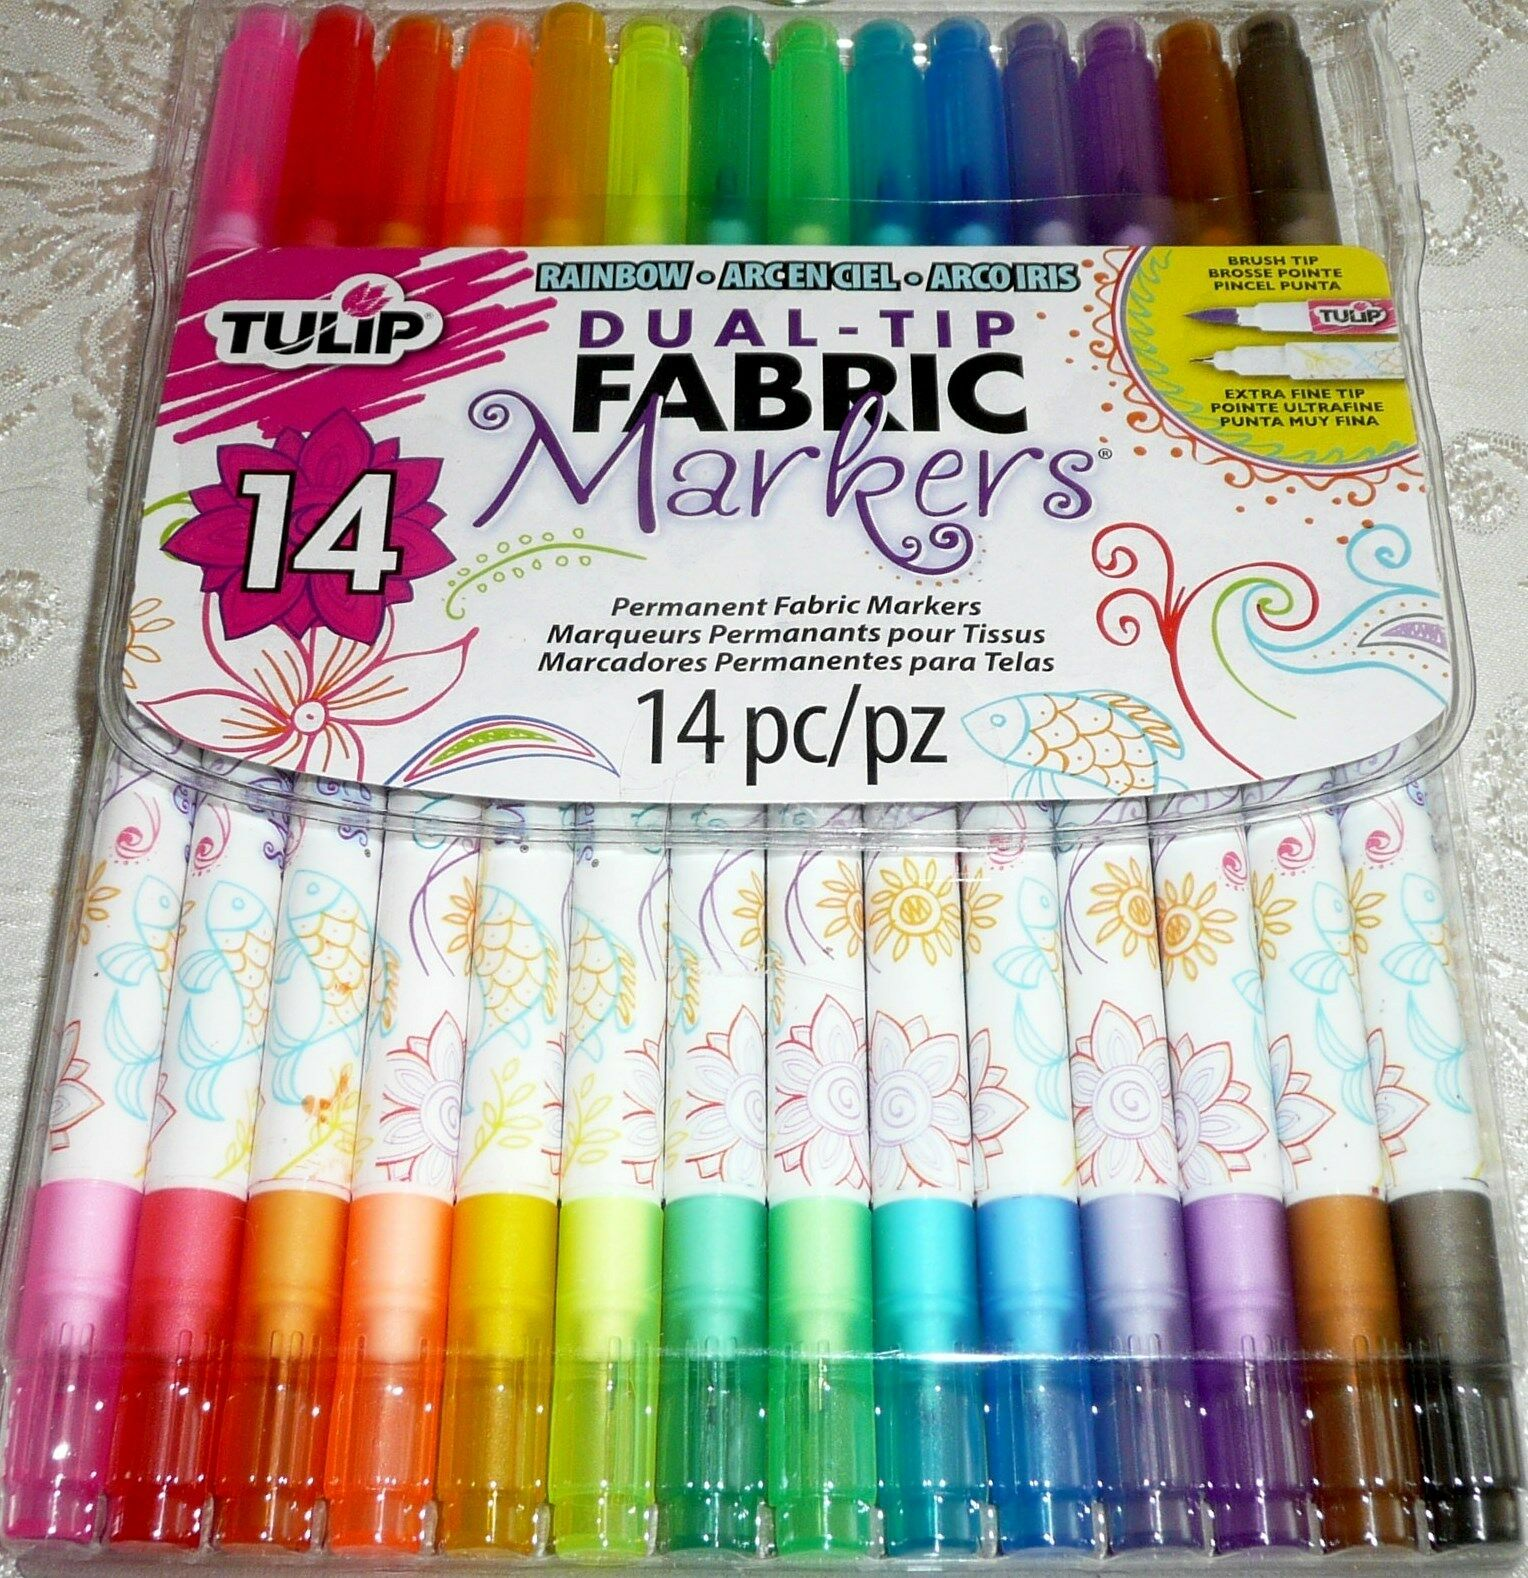 Tulip Dual-tip Fabric Marker Set 14pc Assorted Colors 017754319609 ...